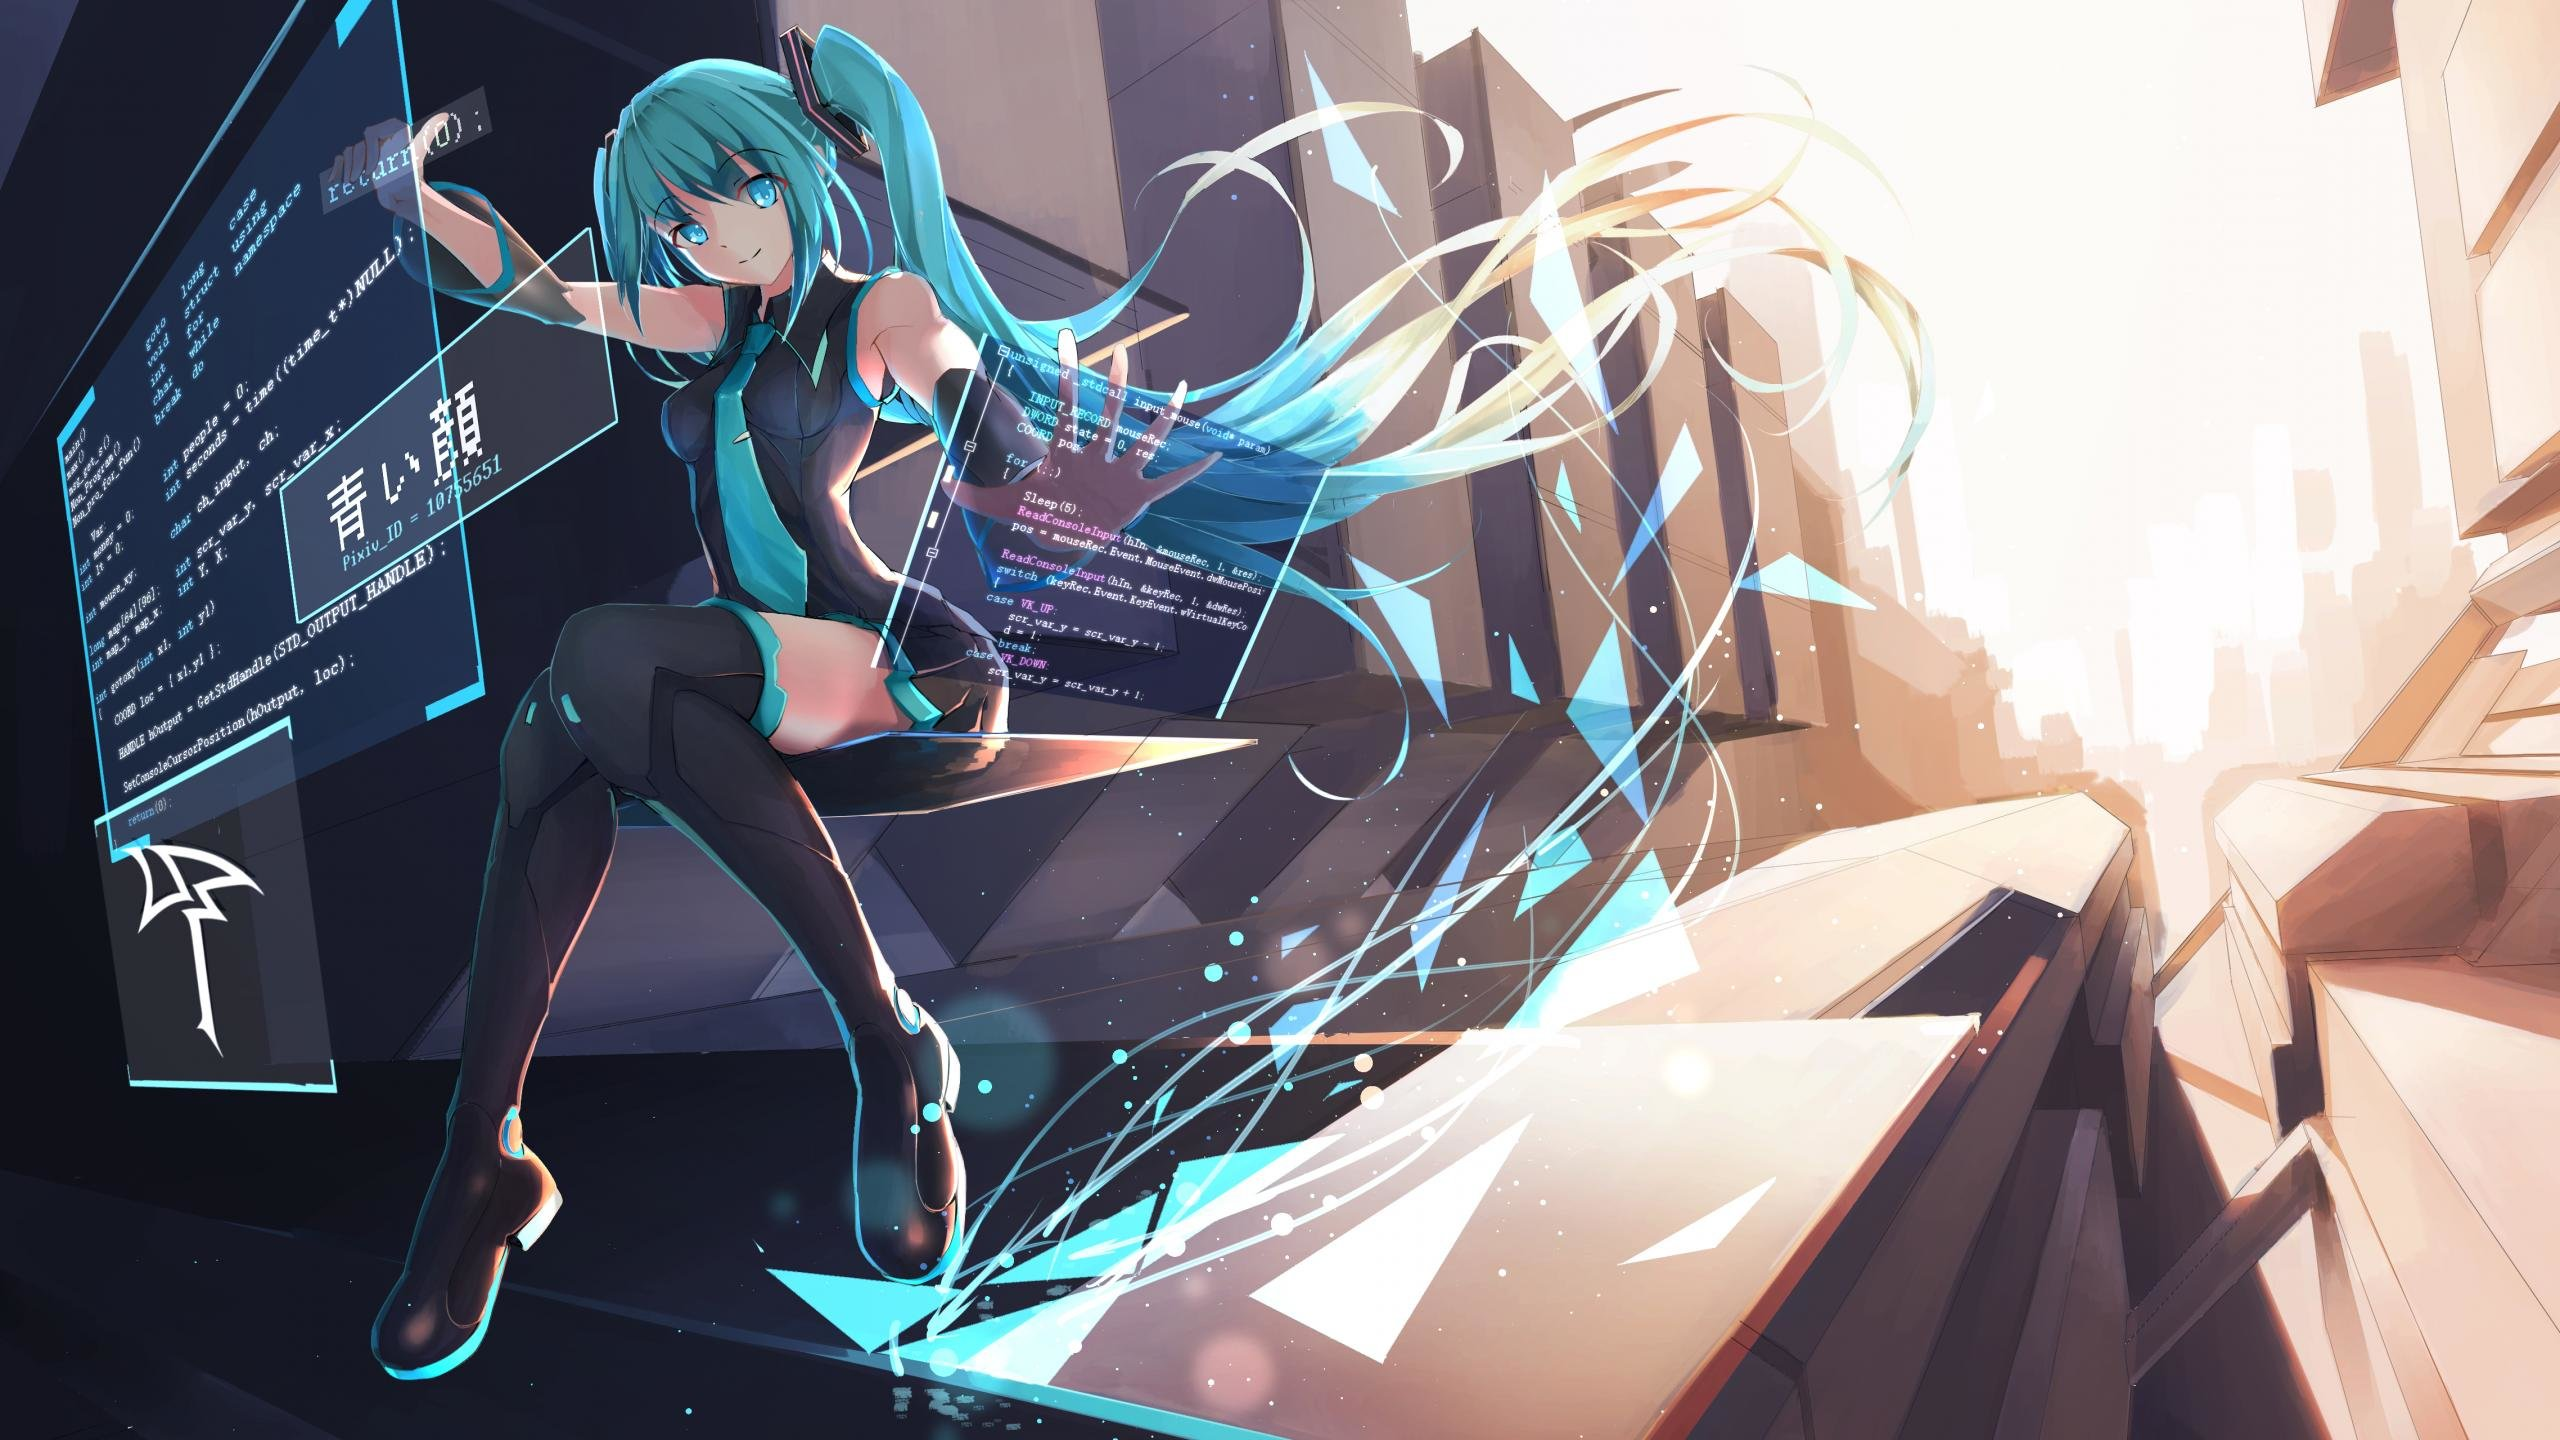 Free download Hatsune Miku background ID:2098 hd 2560x1440 for computer